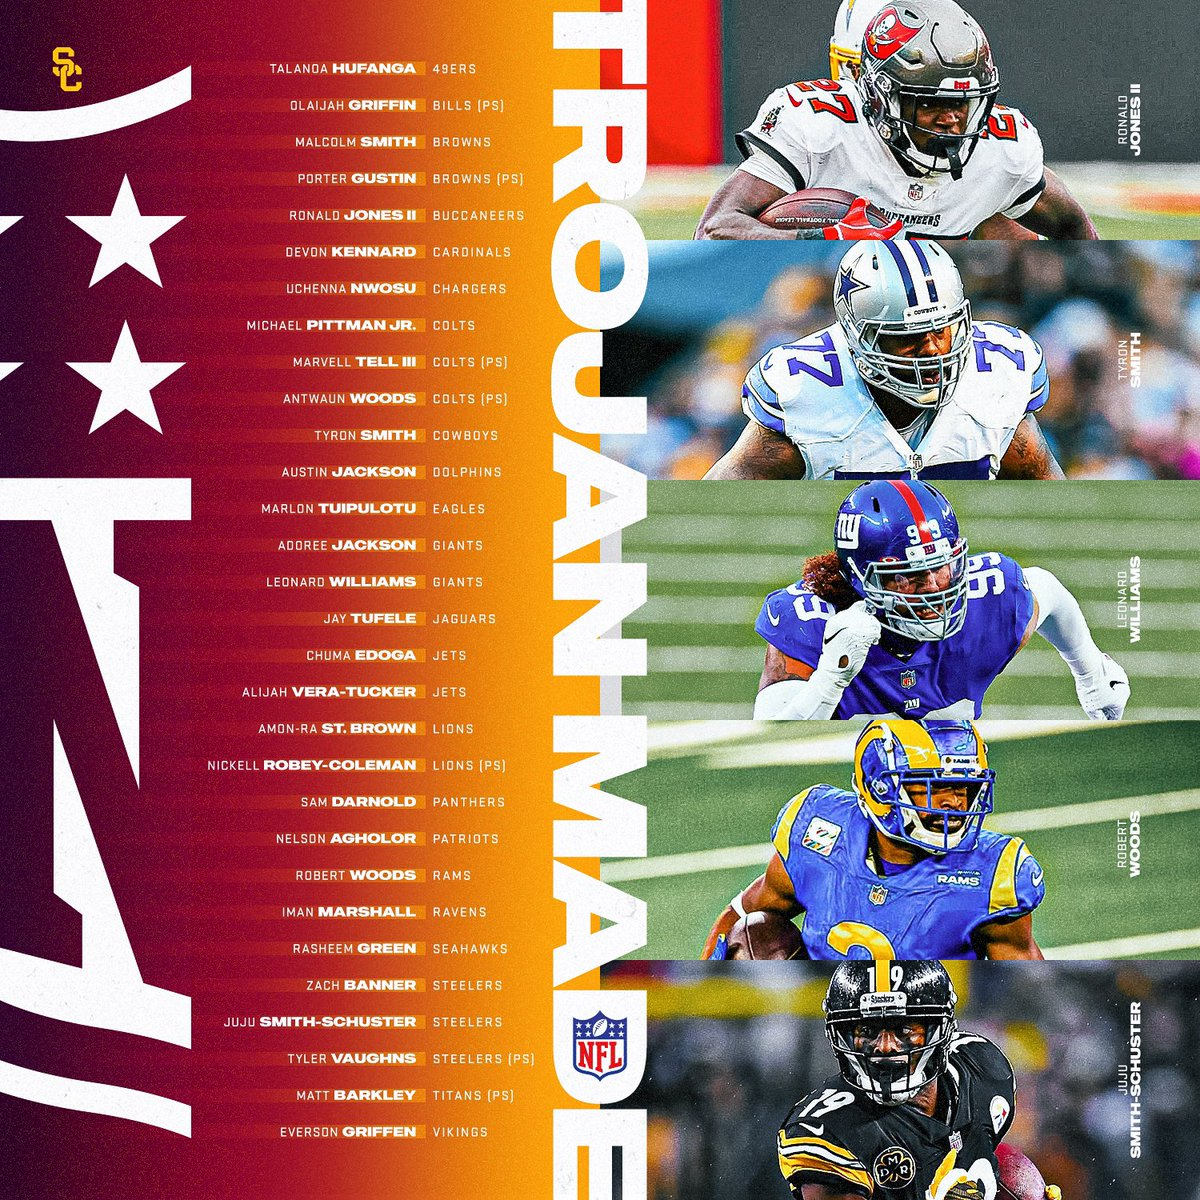 Good luck to all of our Trojans this @NFL season!  #TrojanMade⚔️